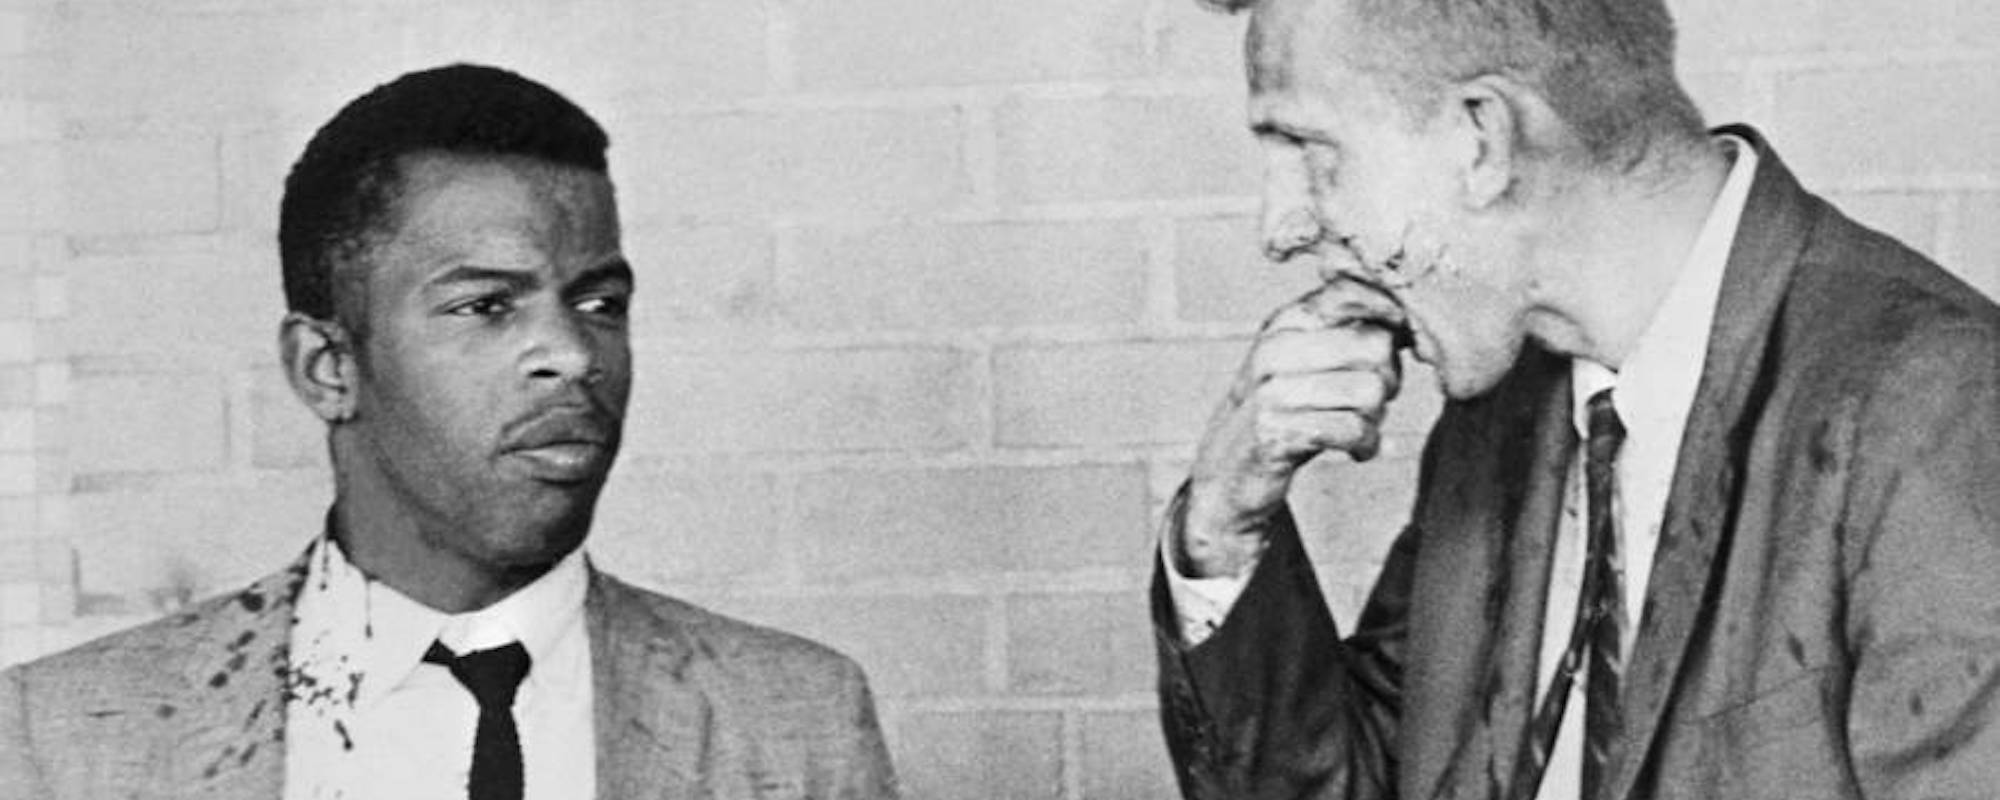 John Lewis And James Zwerg Covered In Blood